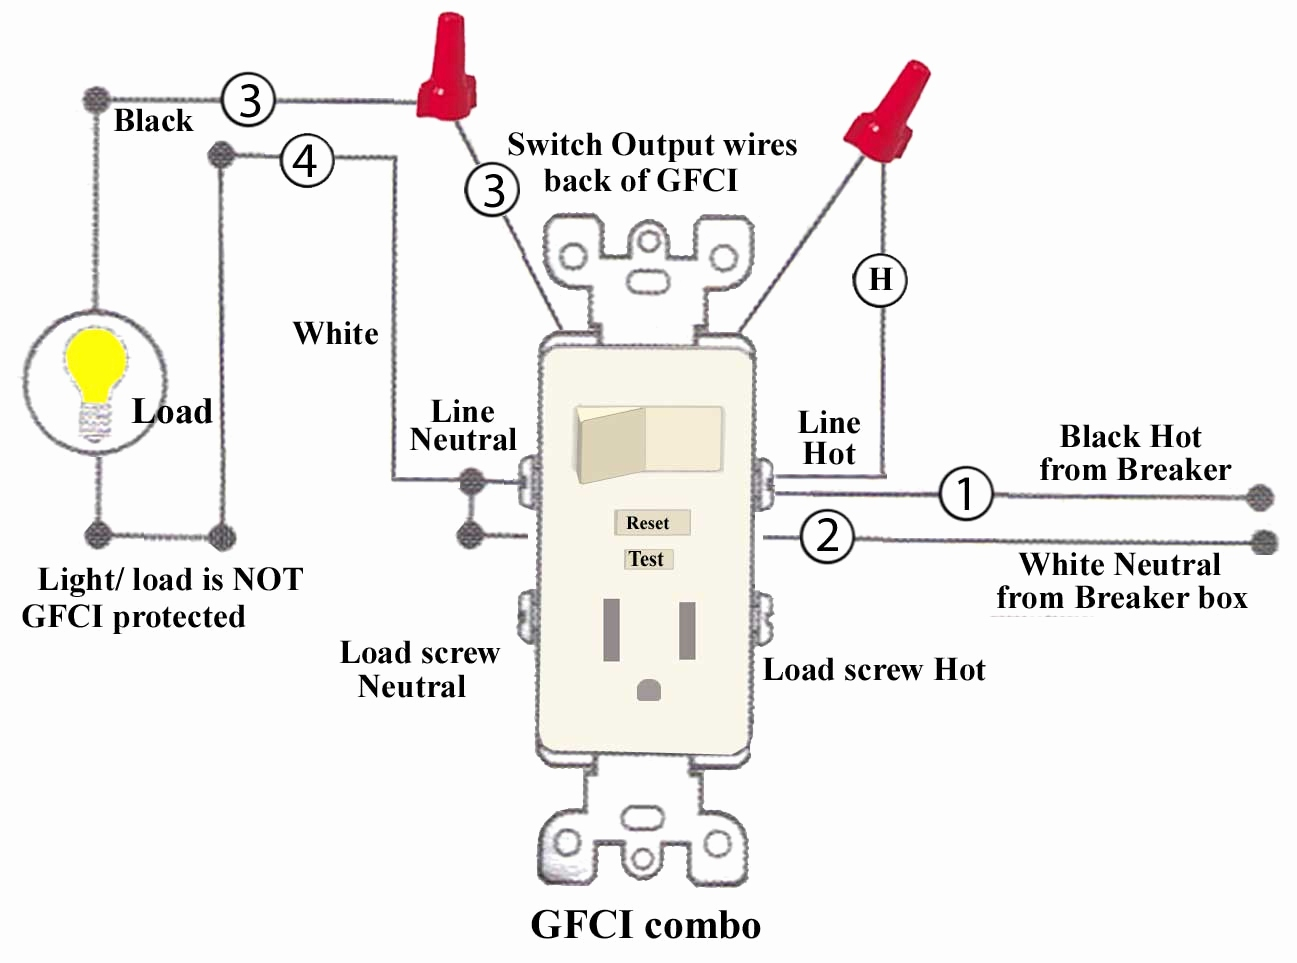 hight resolution of gfci outlet with switch wiring diagram collection full size of wiring diagram leviton timer switch